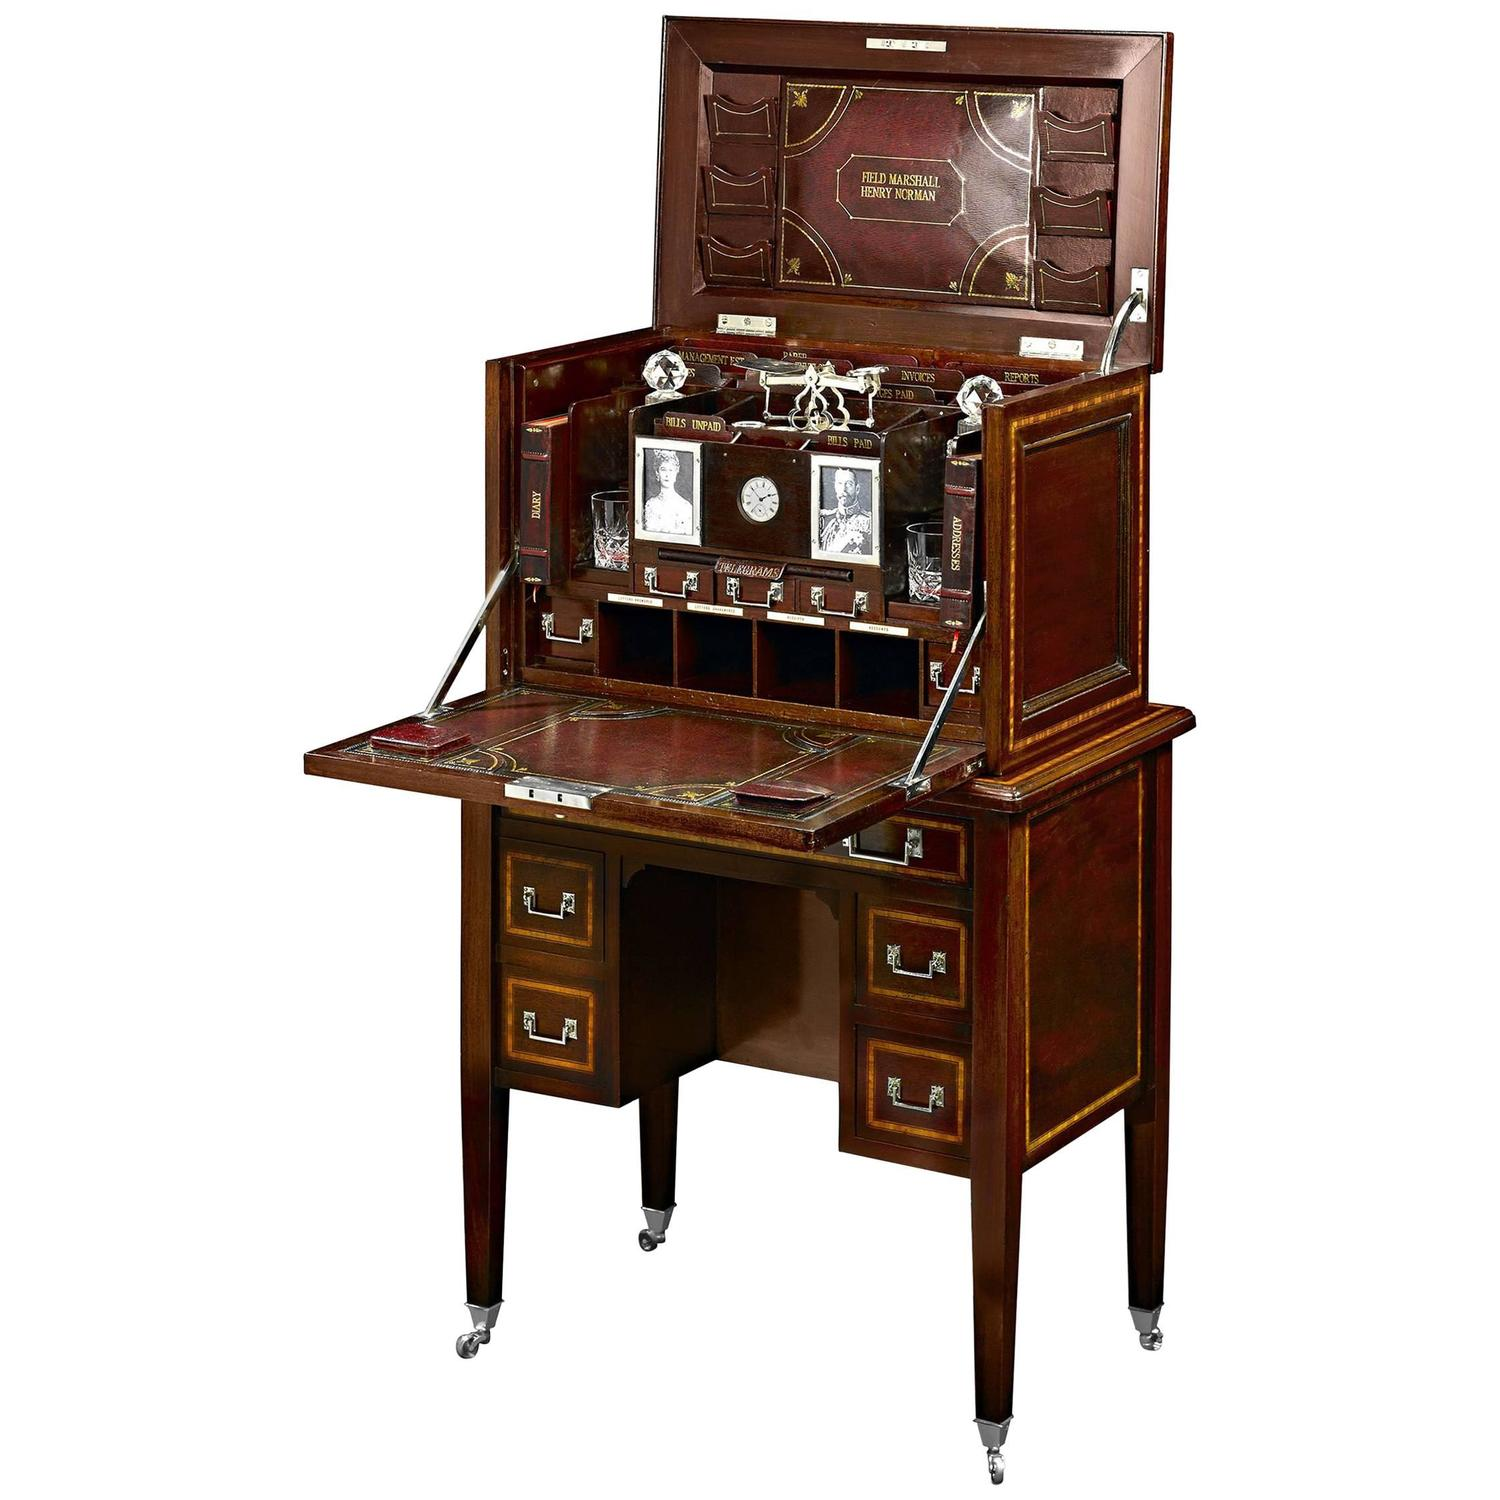 Lovely British Field Marshal's Campaign Desk at 1stdibs RR36